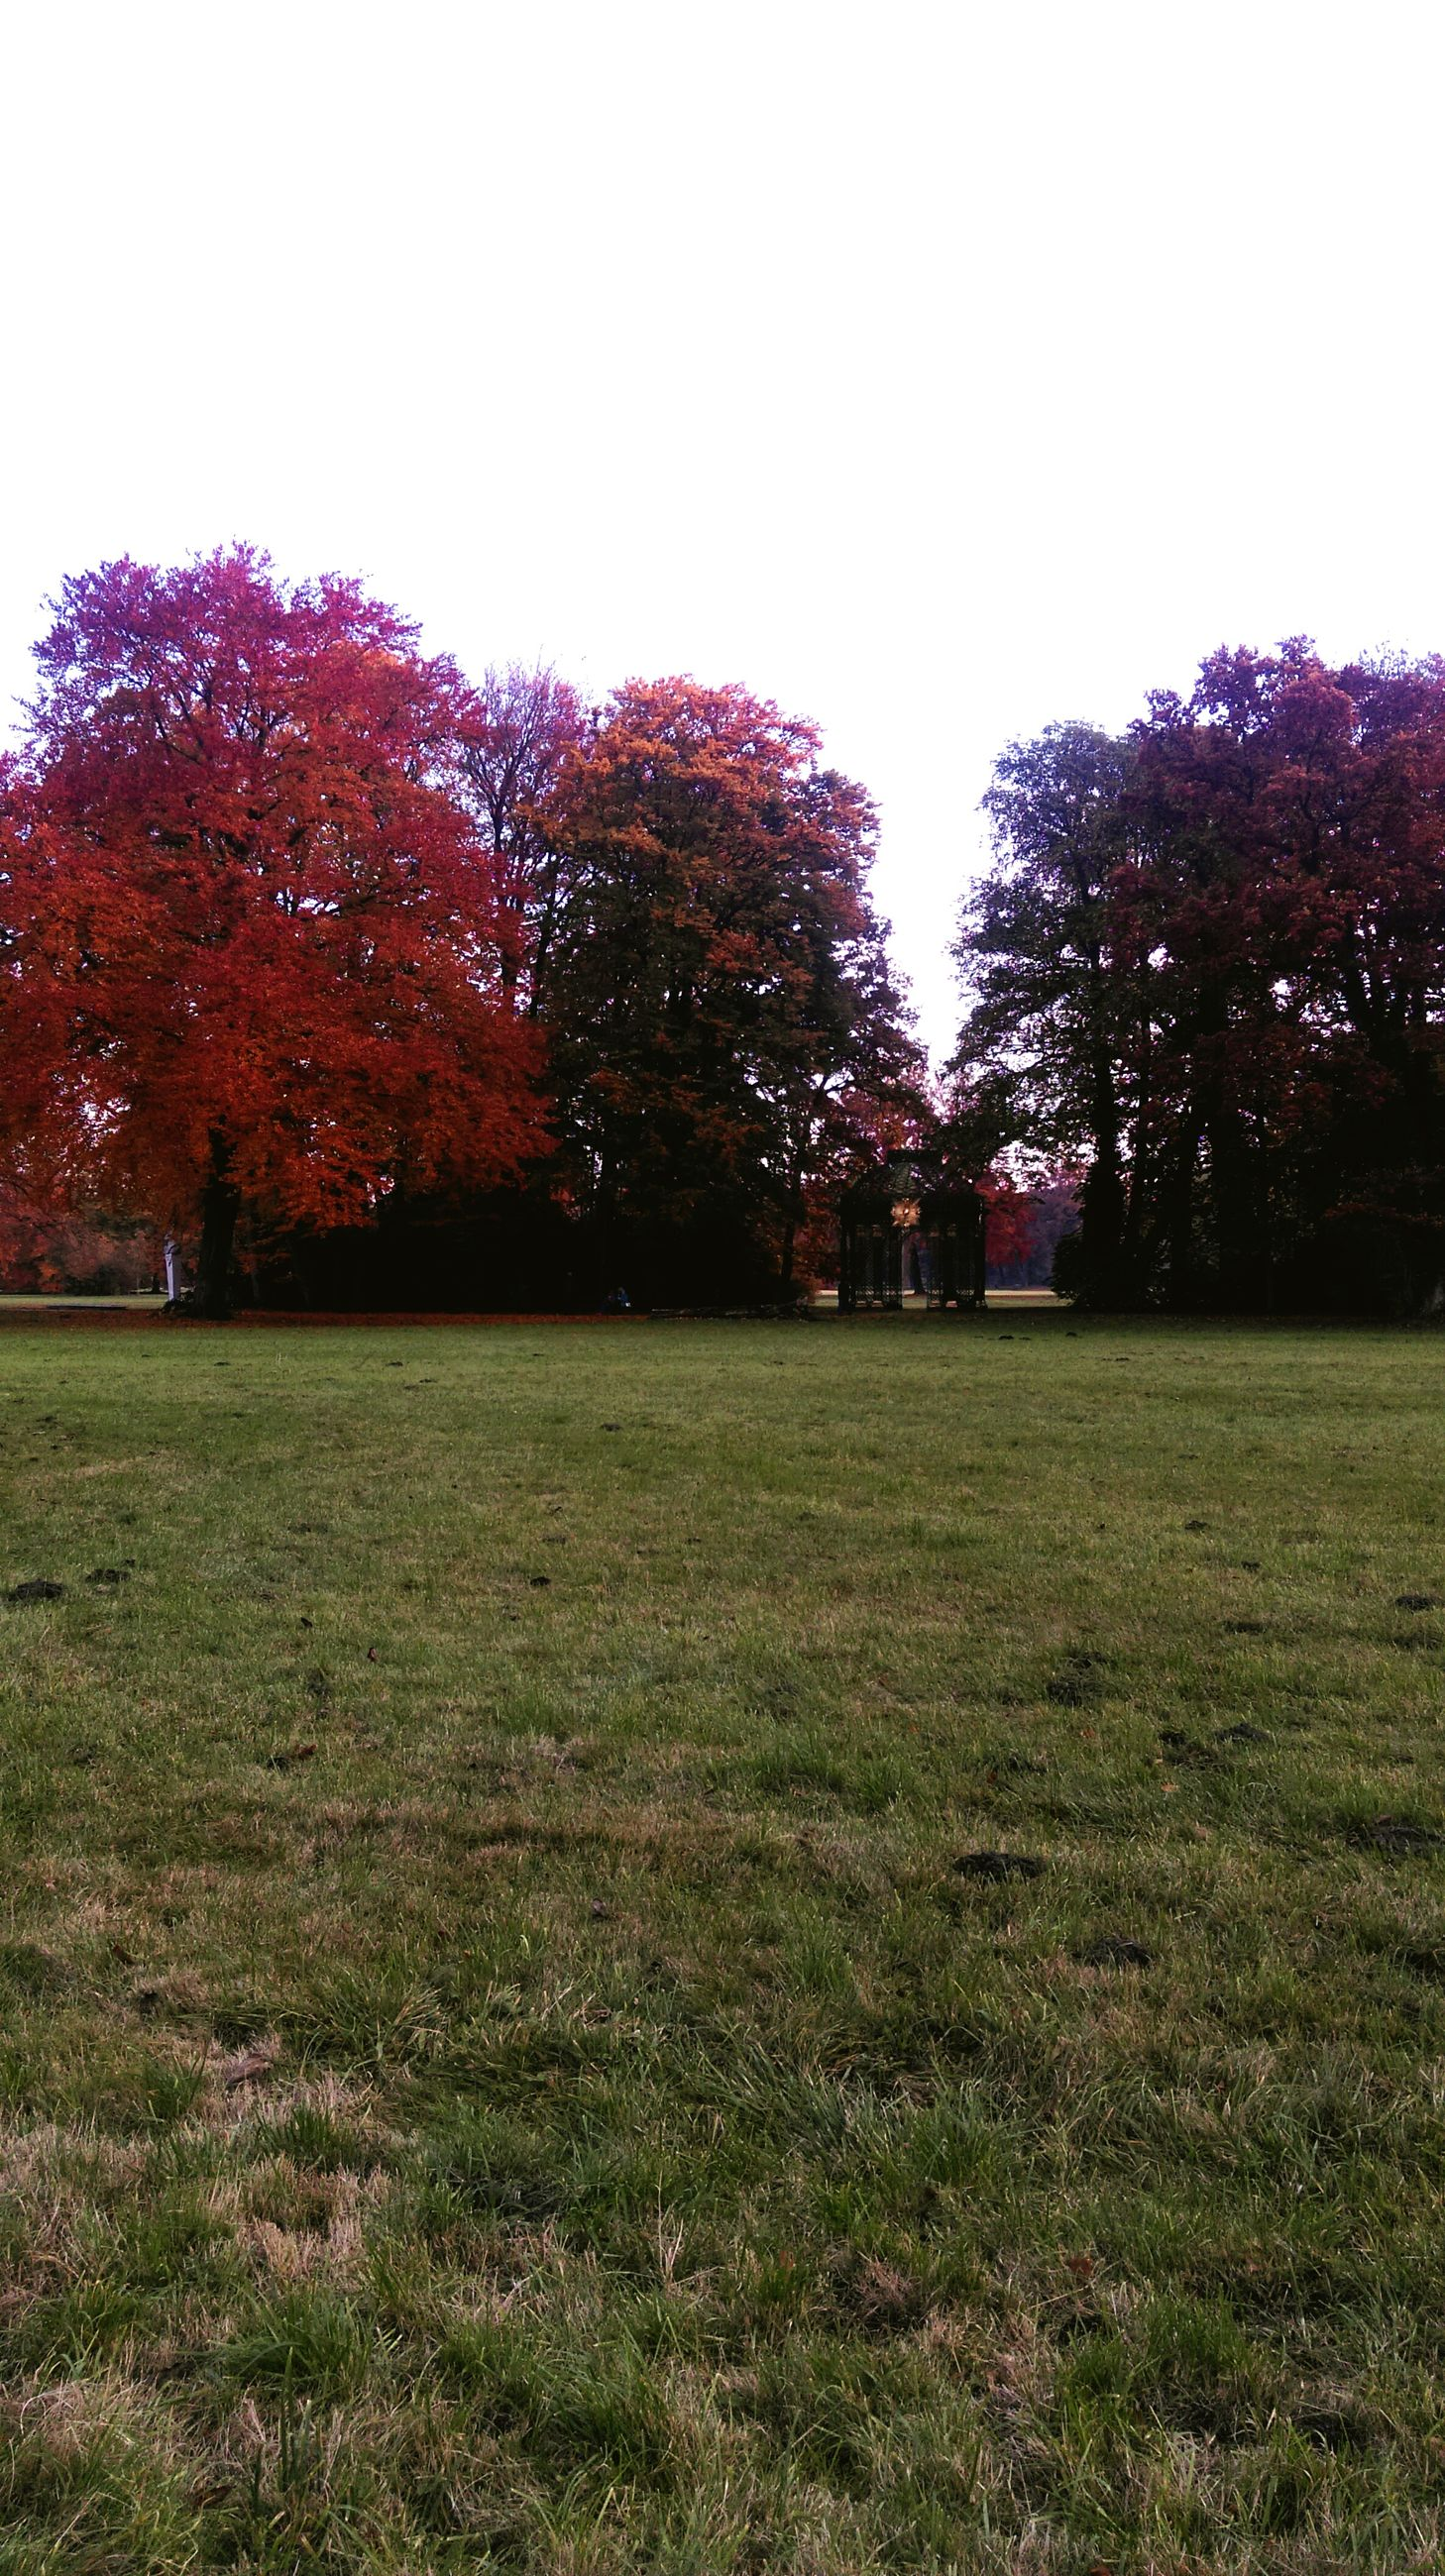 tree, grass, clear sky, field, grassy, growth, tranquility, park - man made space, tranquil scene, nature, beauty in nature, landscape, copy space, green color, park, lawn, scenics, outdoors, no people, day